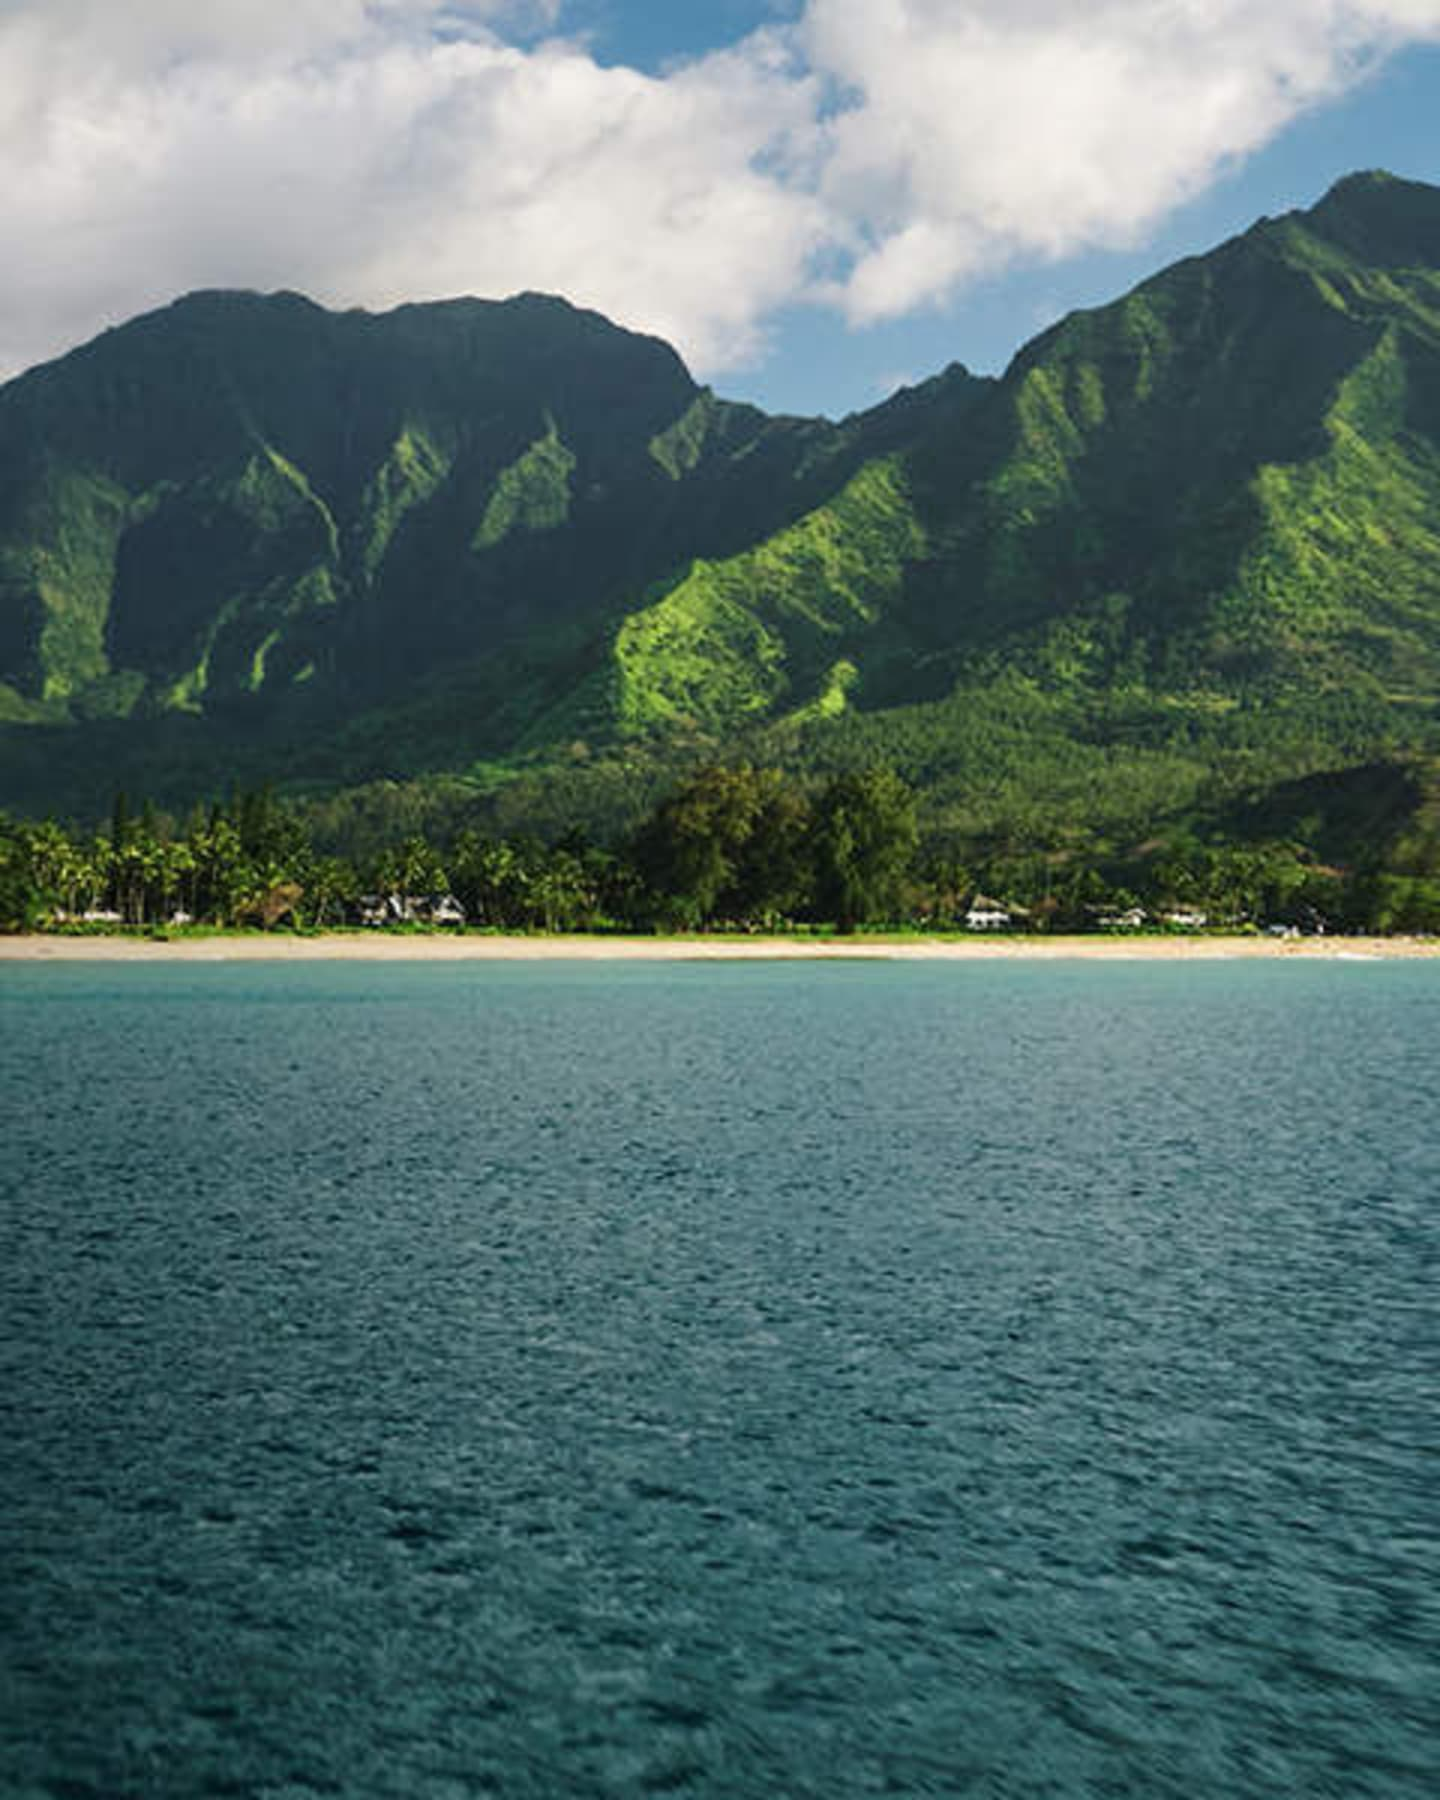 View across the sea towards a beach and green mountains.